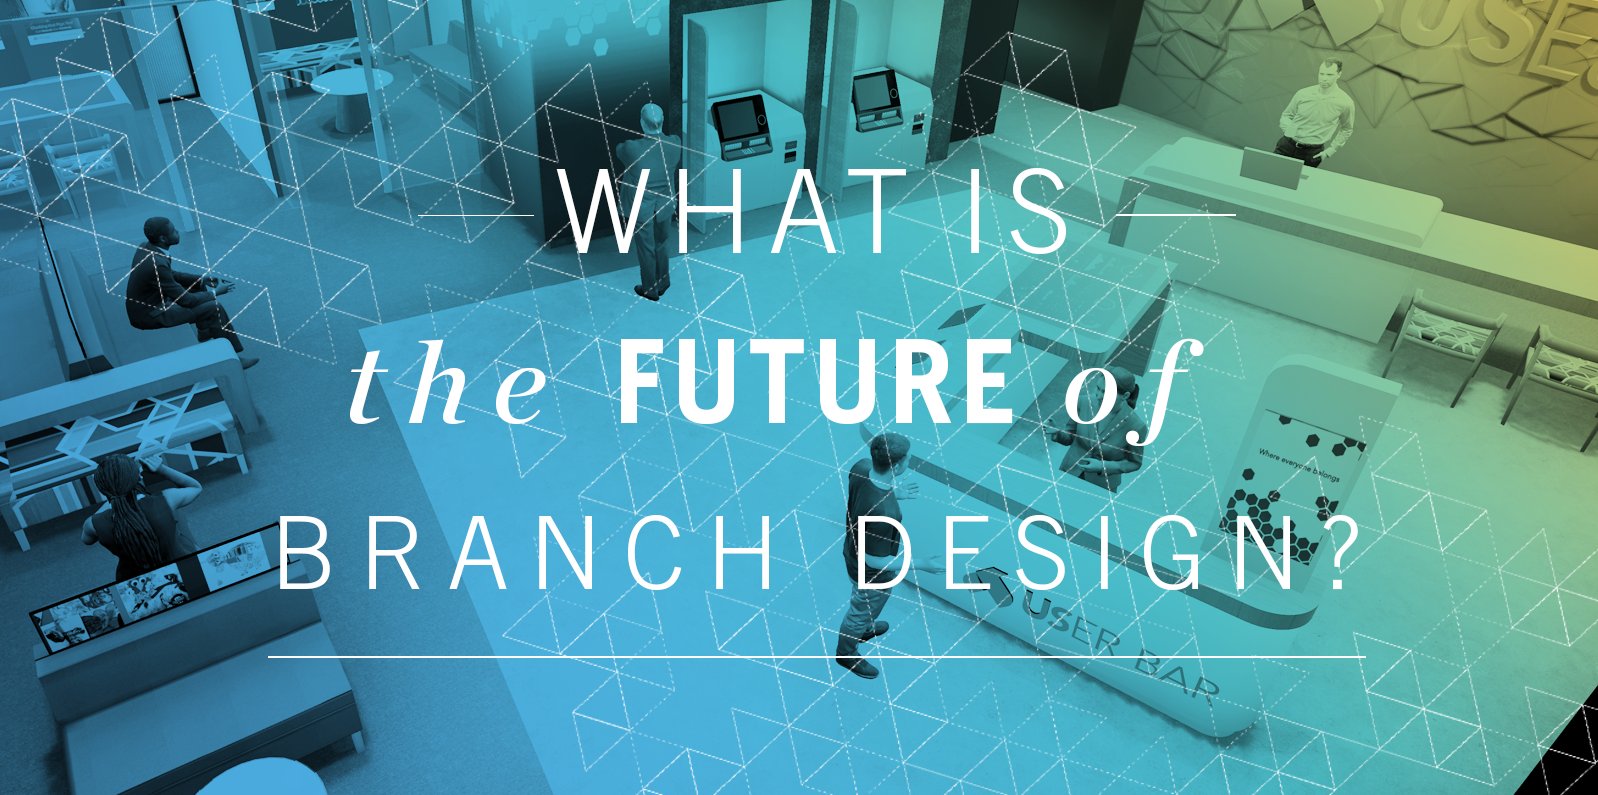 What is the future of branch design?